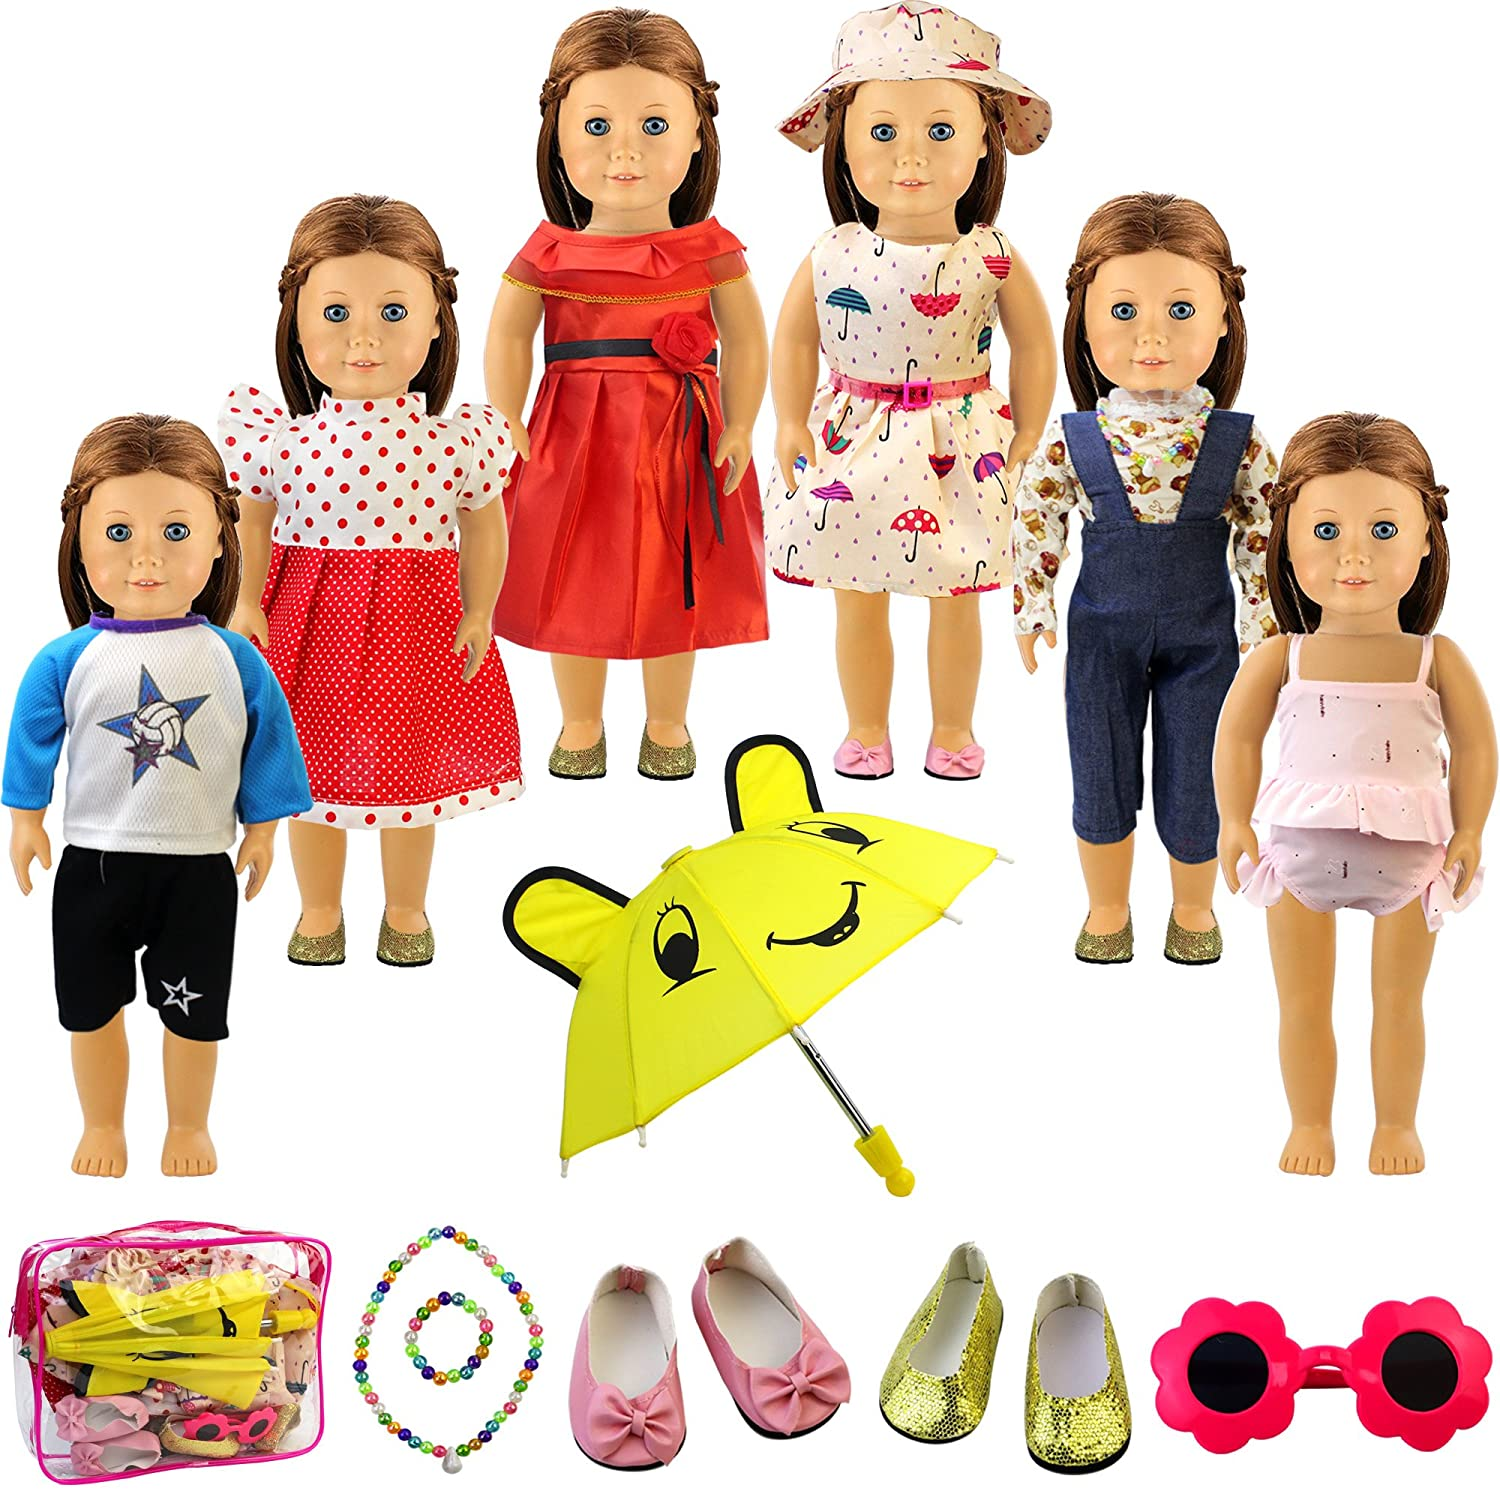 Holicolor 13pcs American Girl Doll Clothes Dress Outfits Wardrobe Makeover, Including 6 Complete Outfits, Fits 18 Doll Clothes (13PCS)